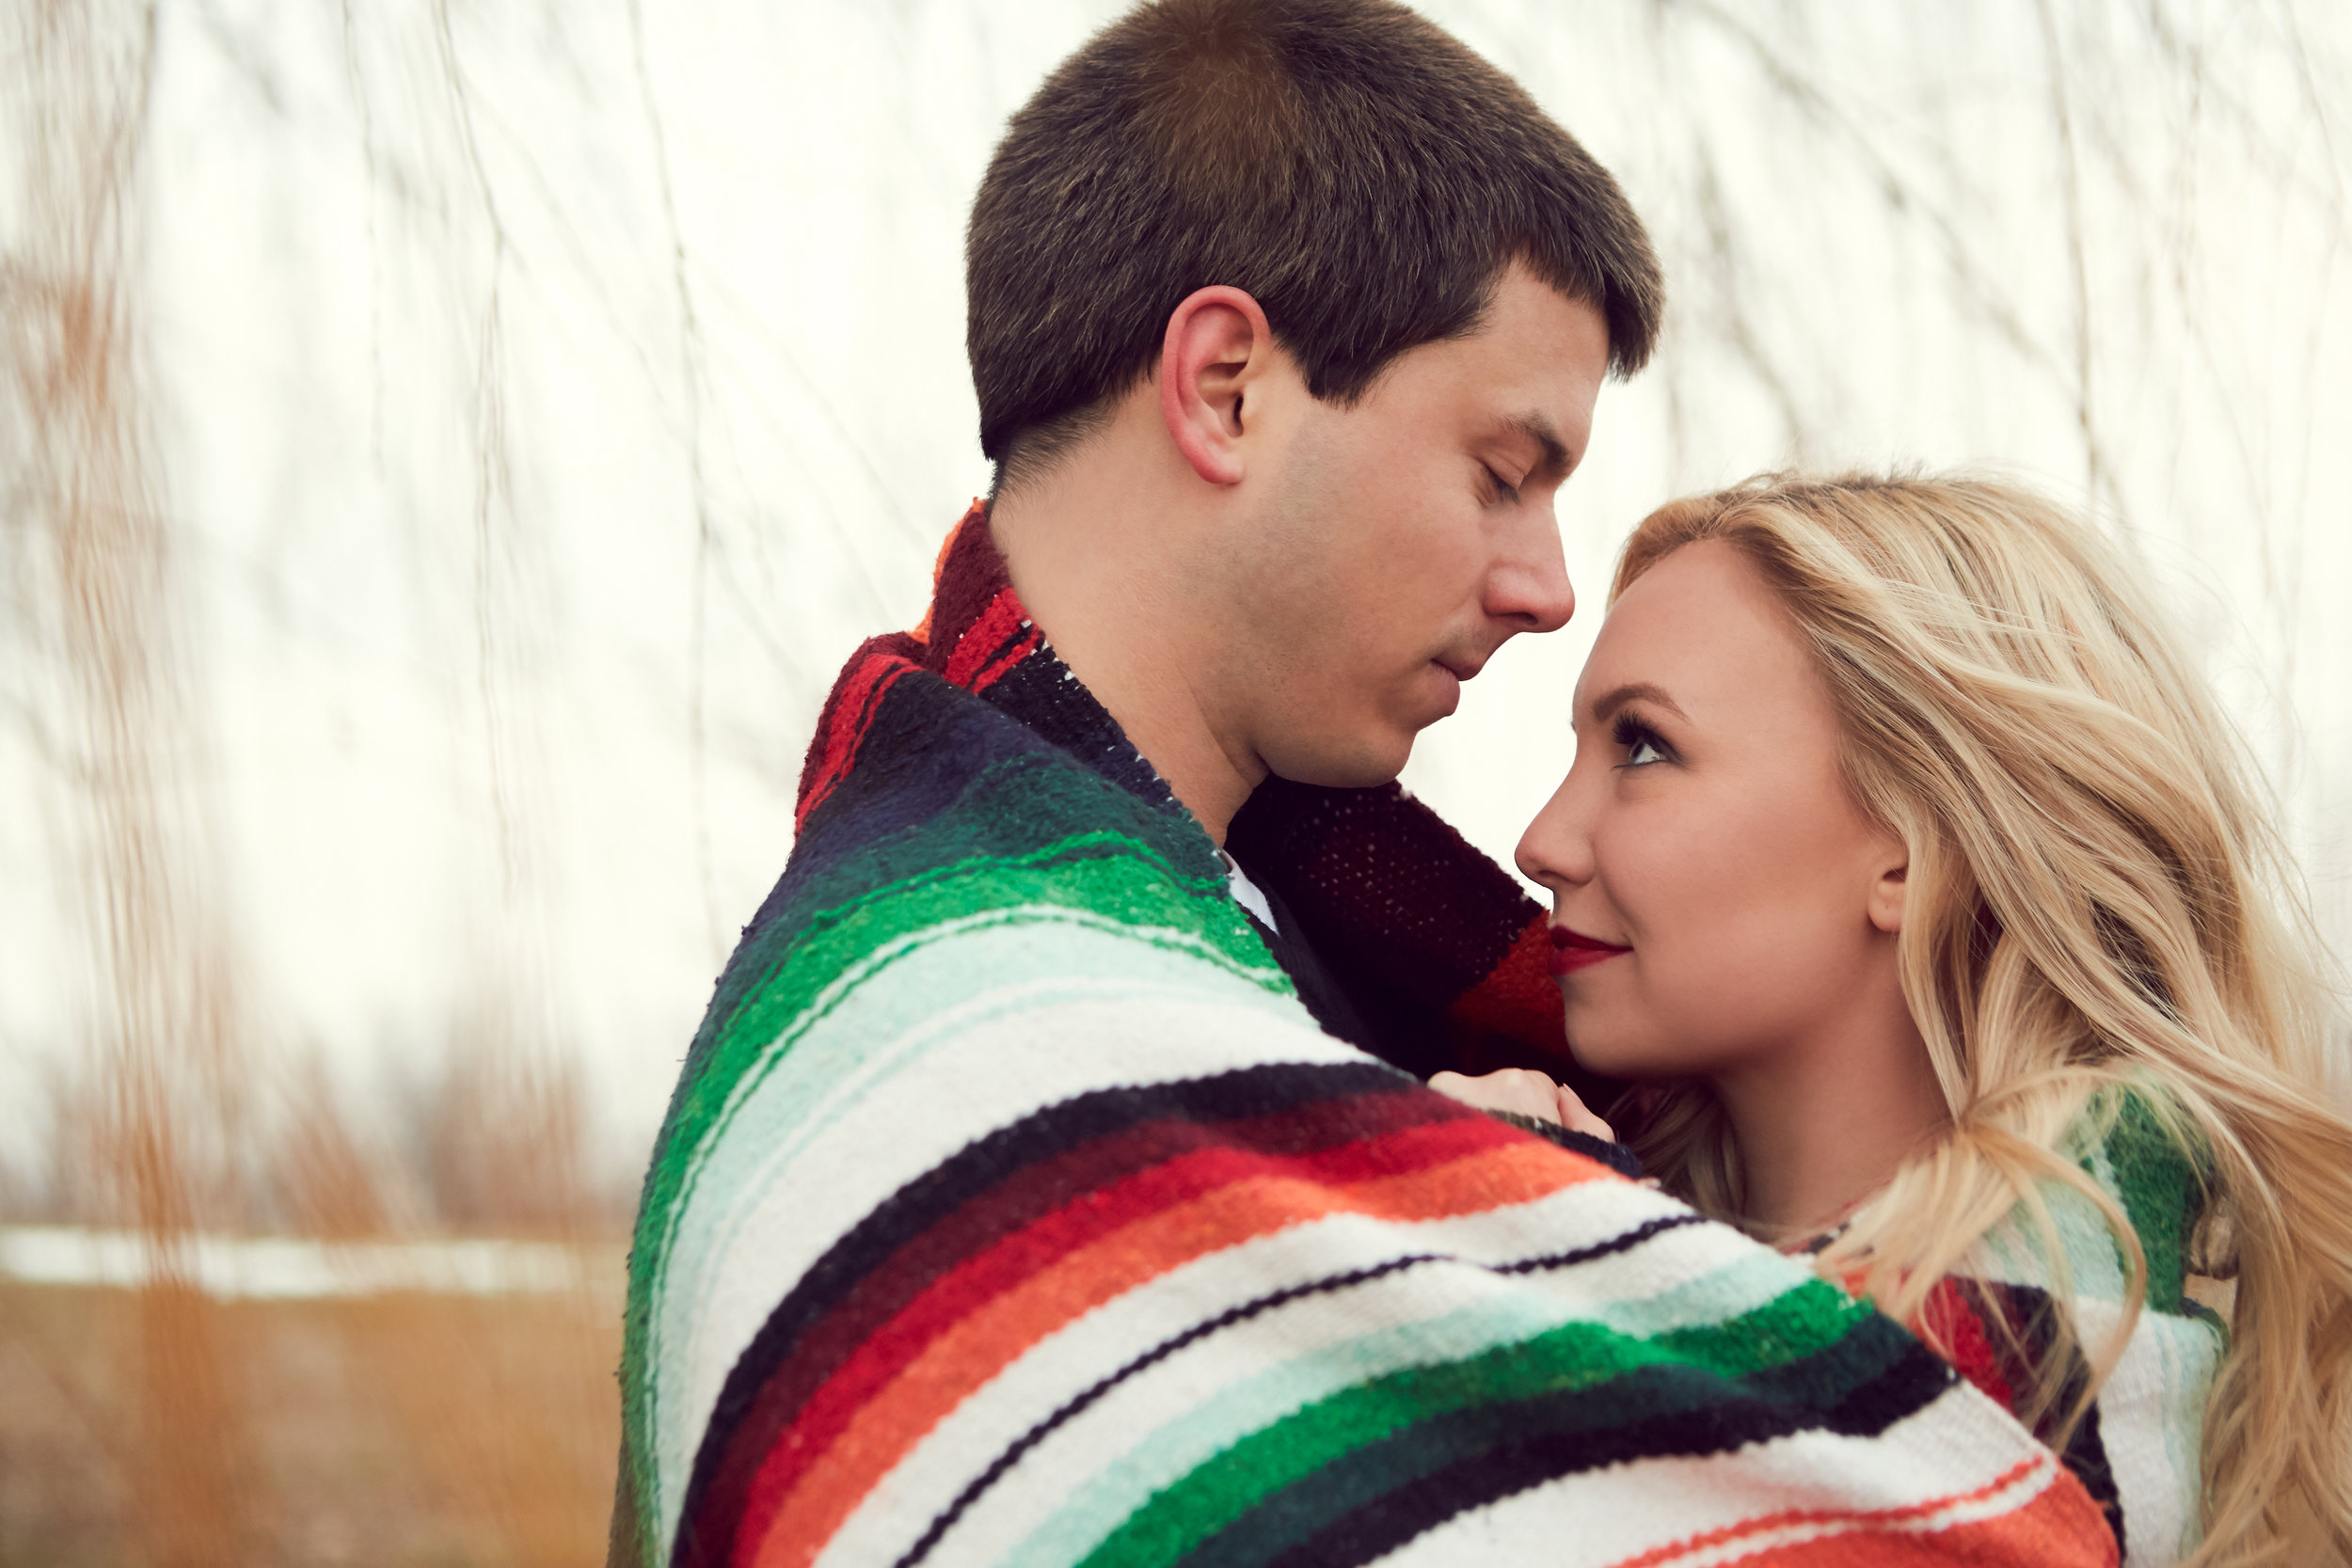 Hende + Mike's Wisconsin Engagement Photos - December Engagements | De Soto, WI | WinterGallery Blog Post